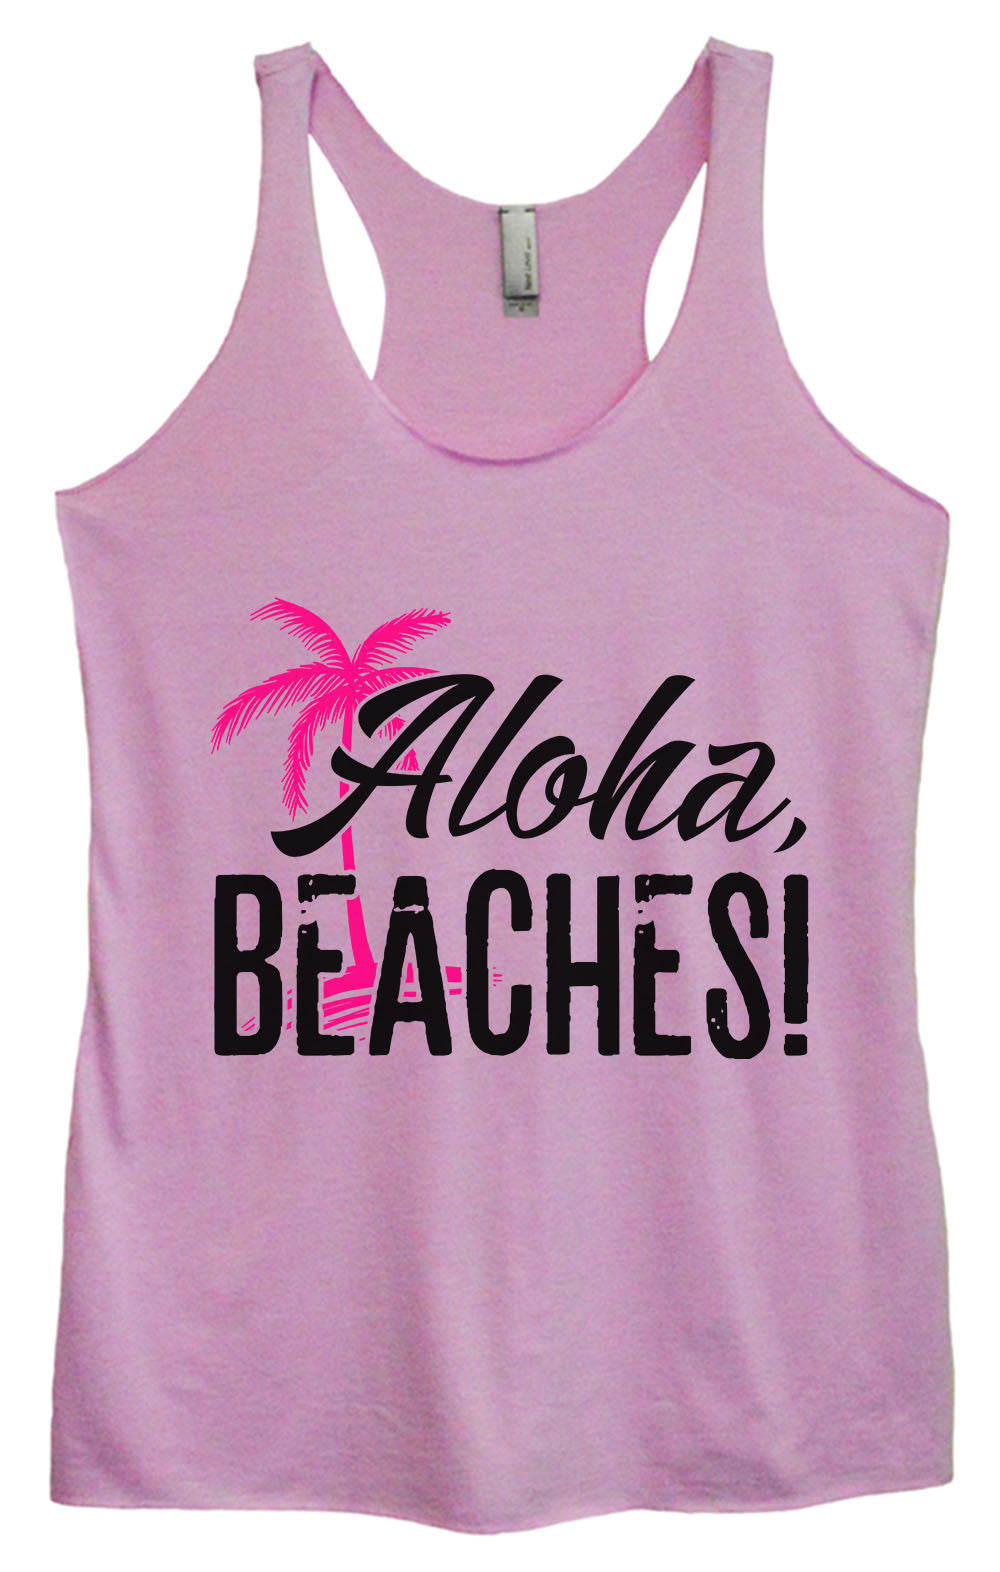 Womens Fashion Triblend Tank Top - Aloha, Beaches! - Tri-1387 - Funny Shirts Tank Tops Burnouts and Triblends  - 1